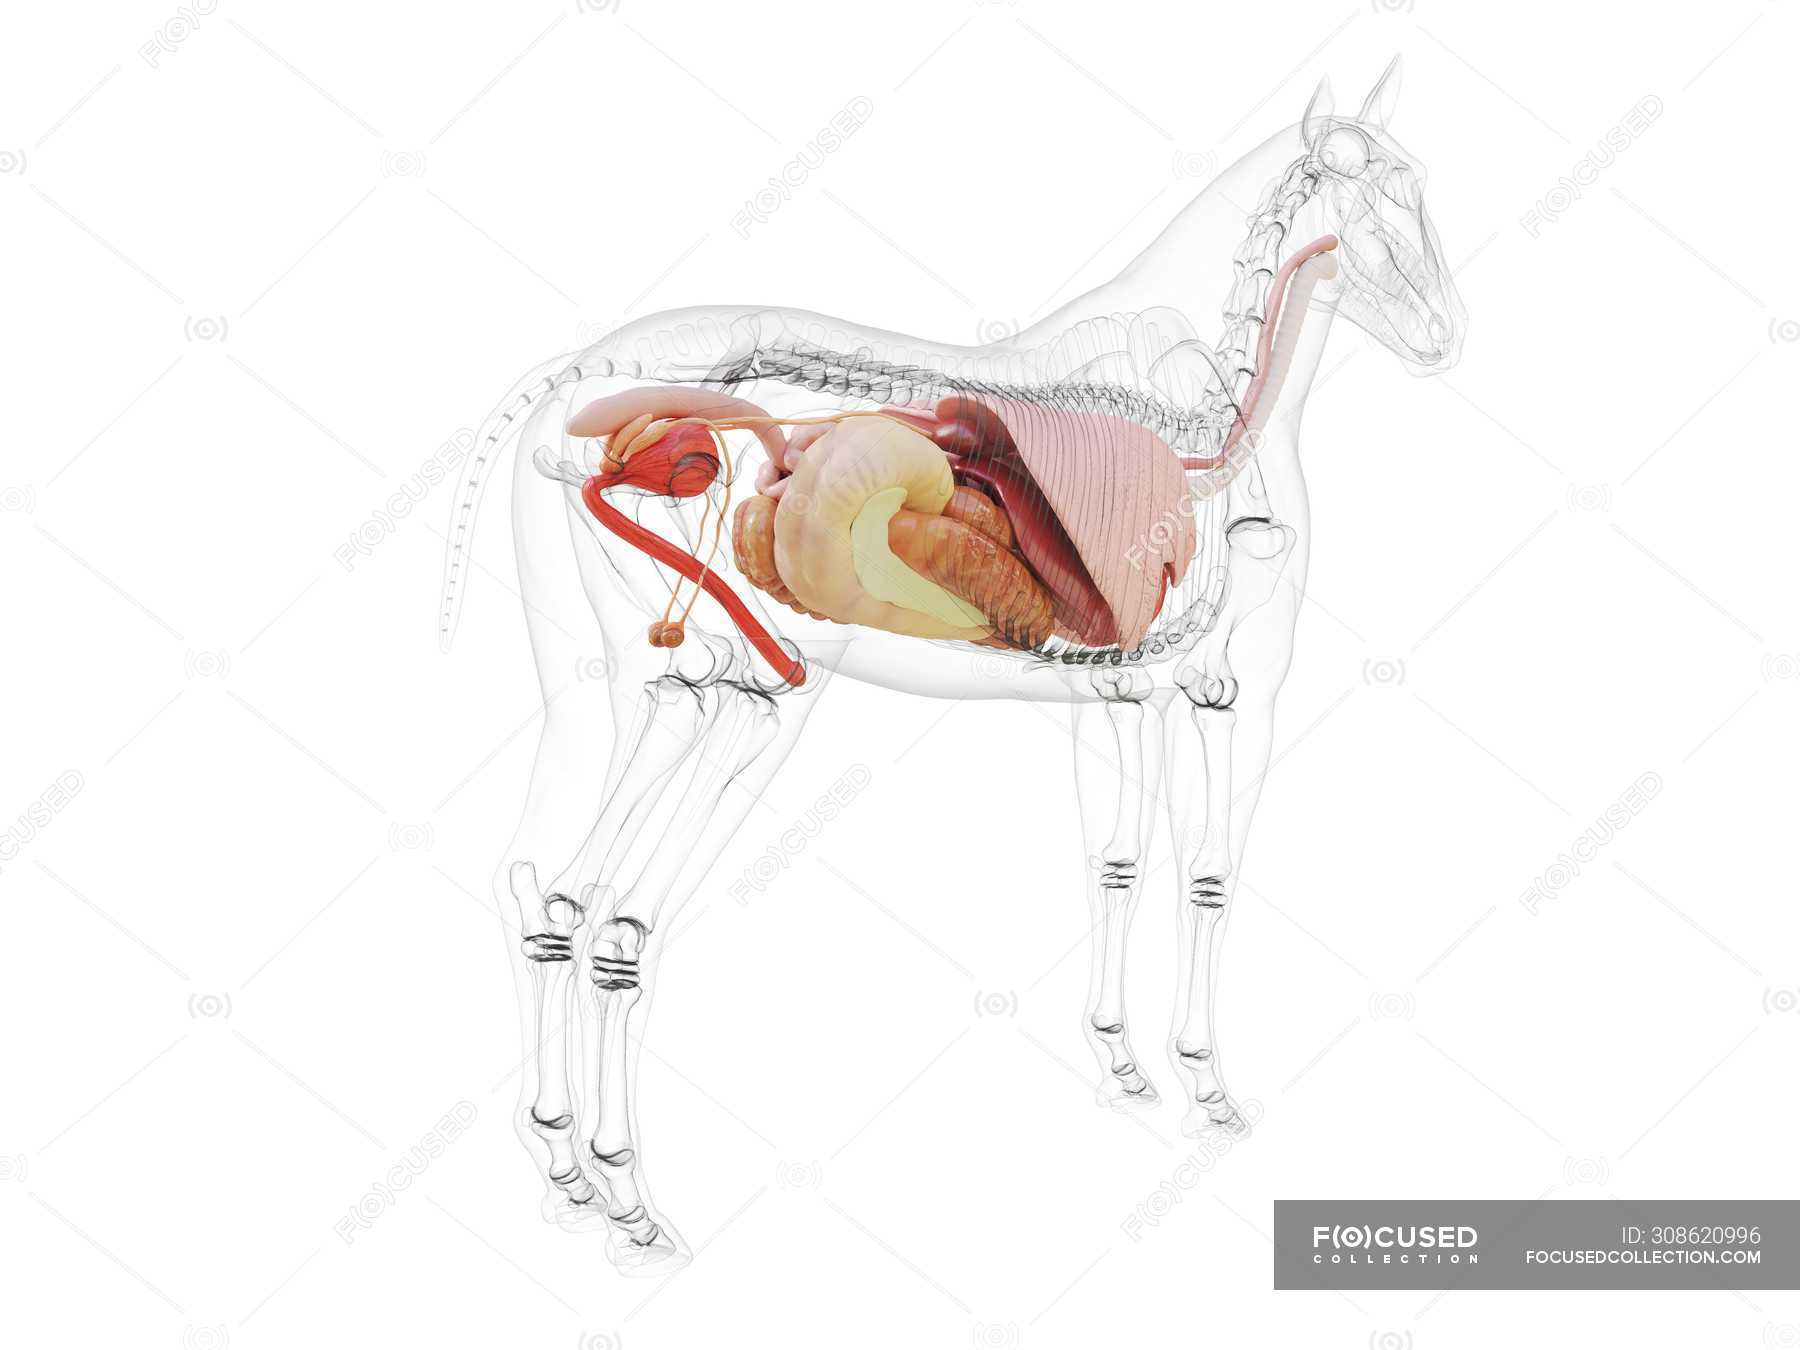 Horse Anatomy With Visible Internal Organs On White Background Computer Illustration Lungs Nature Stock Photo 308620996